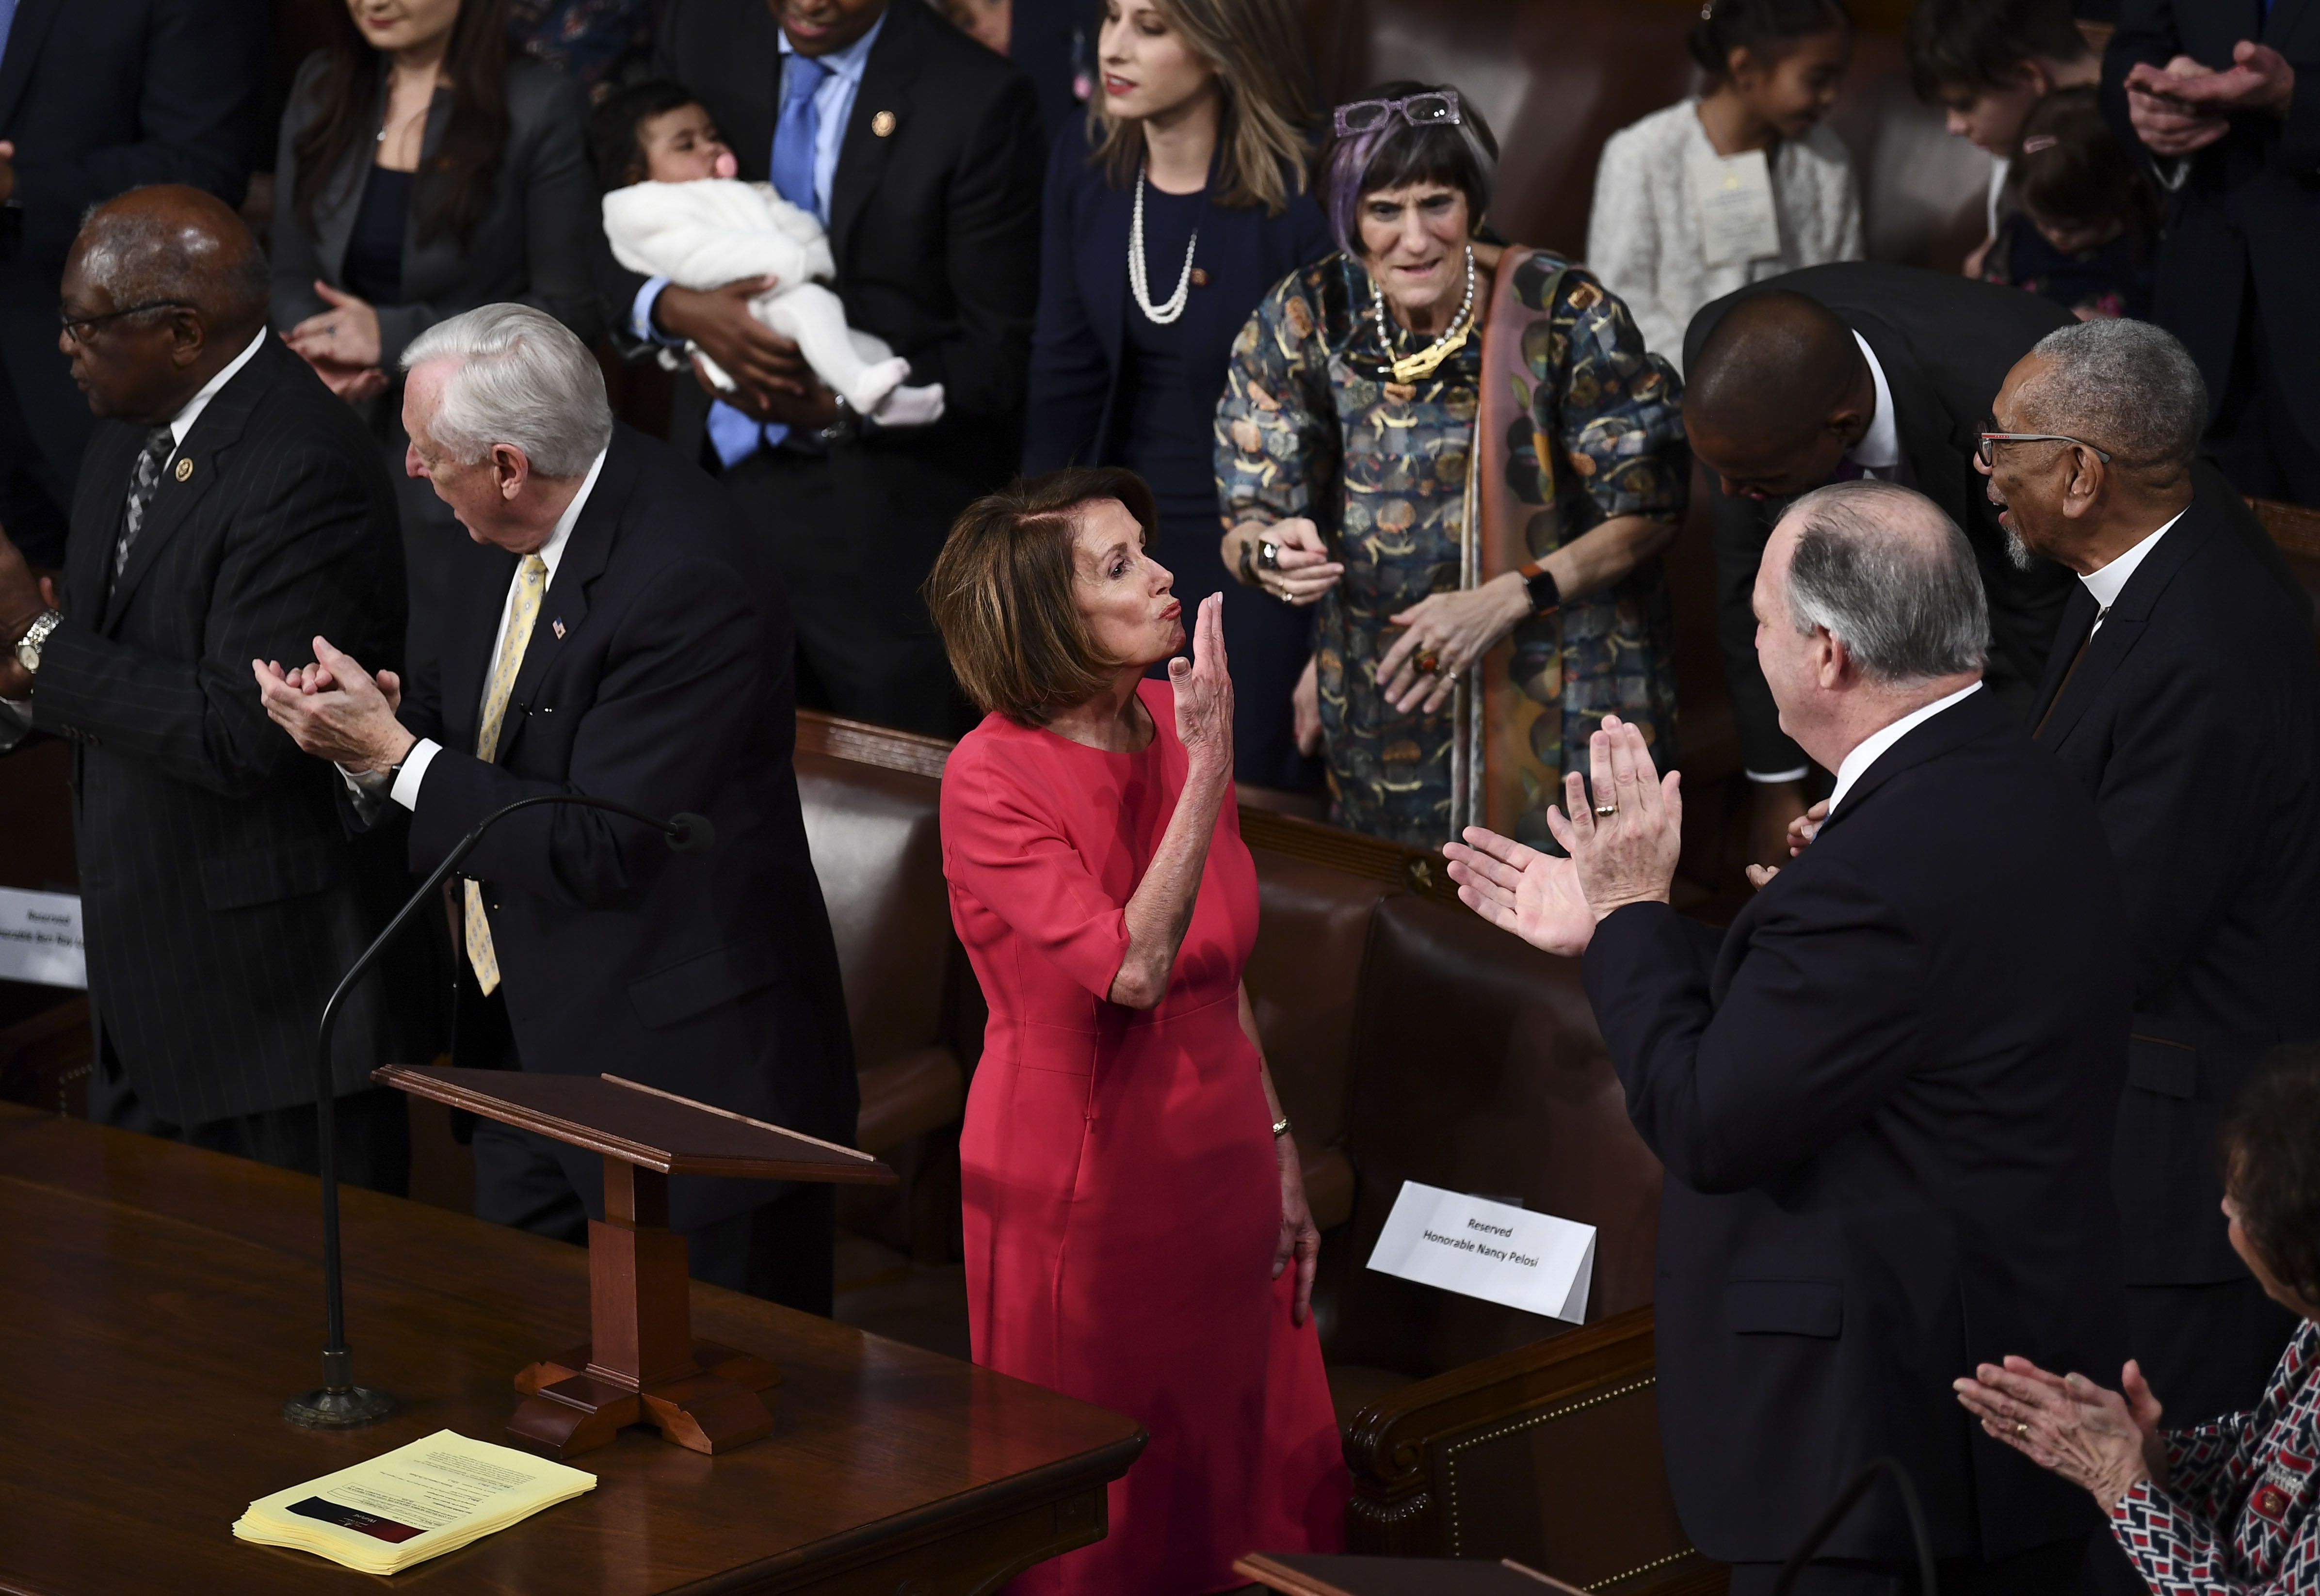 Nancy Pelosi blows a kiss on the House floor in pink dress.